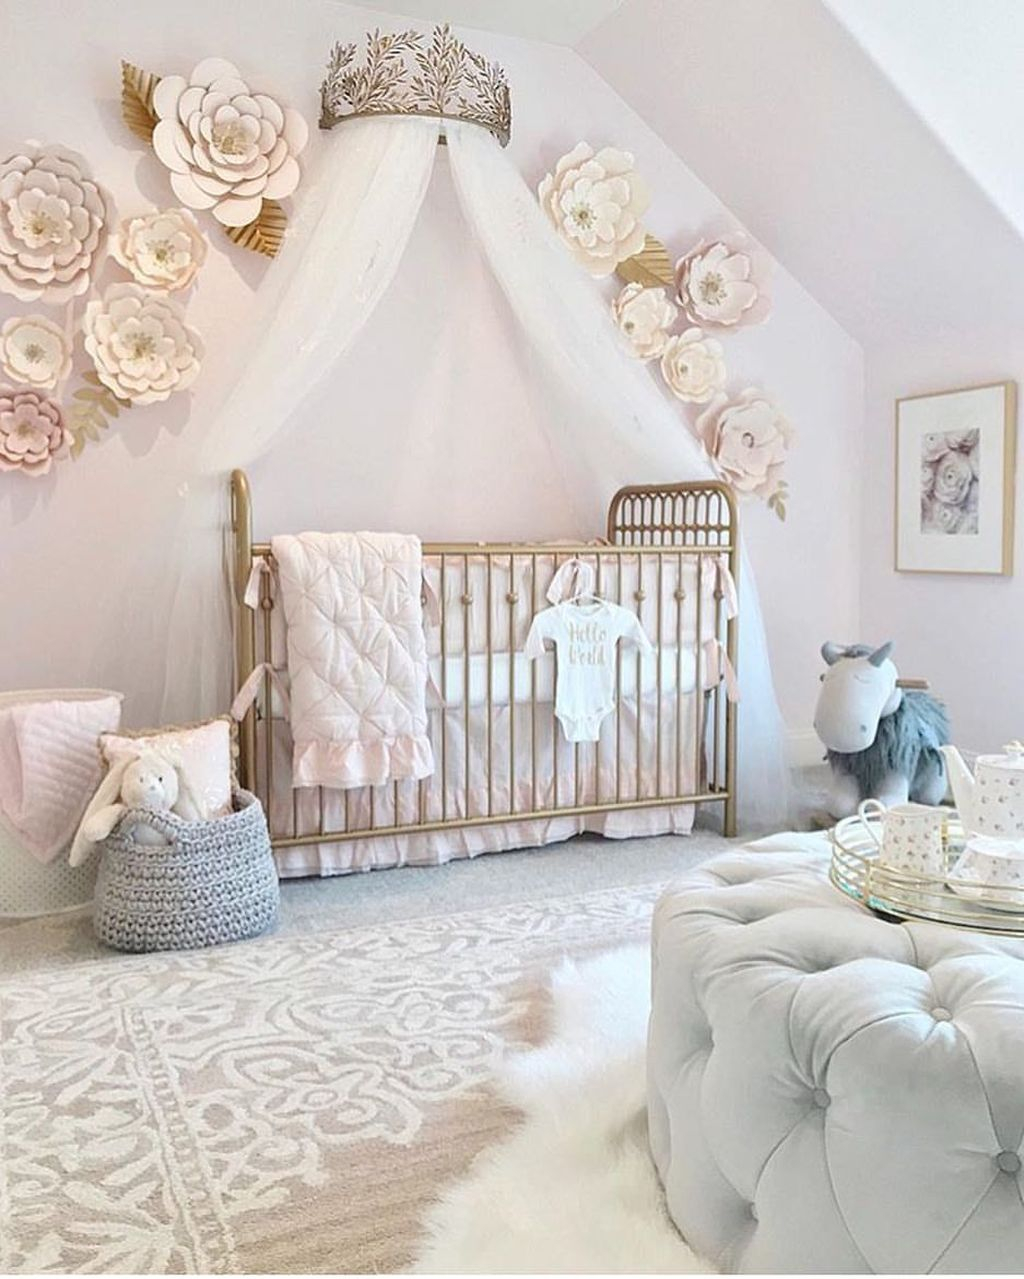 Cute And Cozy Bedroom Decor For Baby Girl33